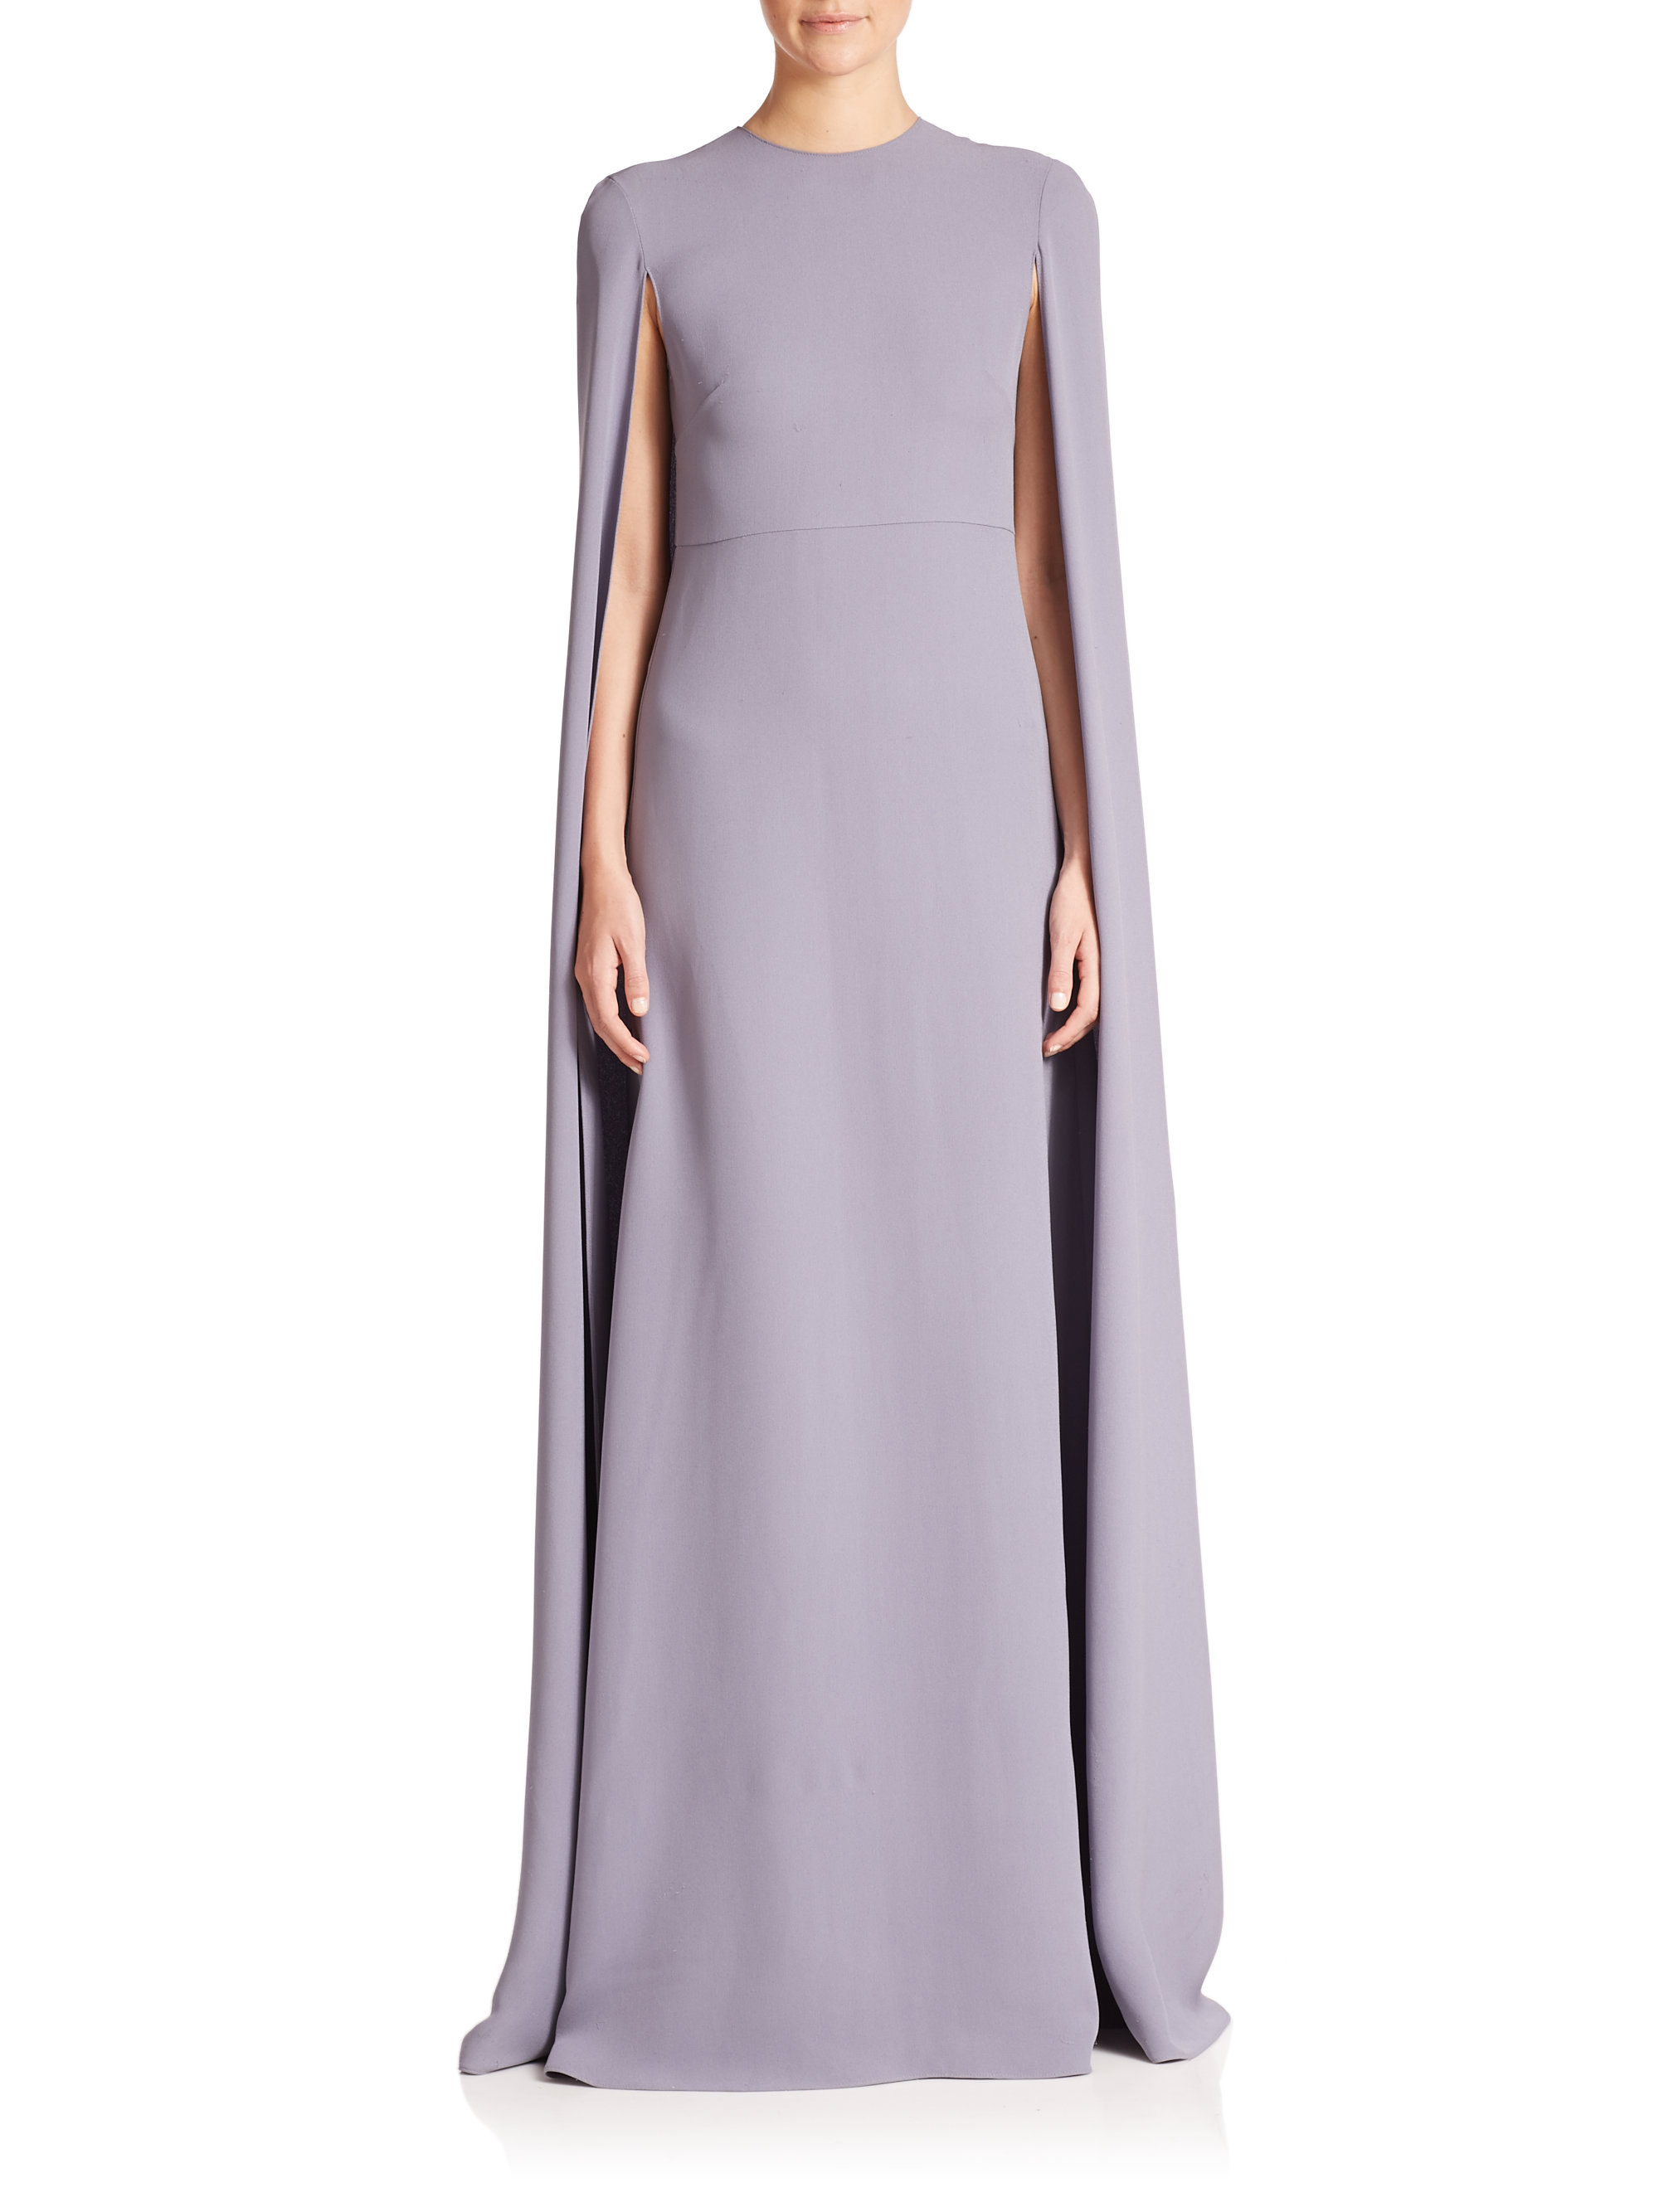 Lyst - Valentino Silk Cape Gown in Blue